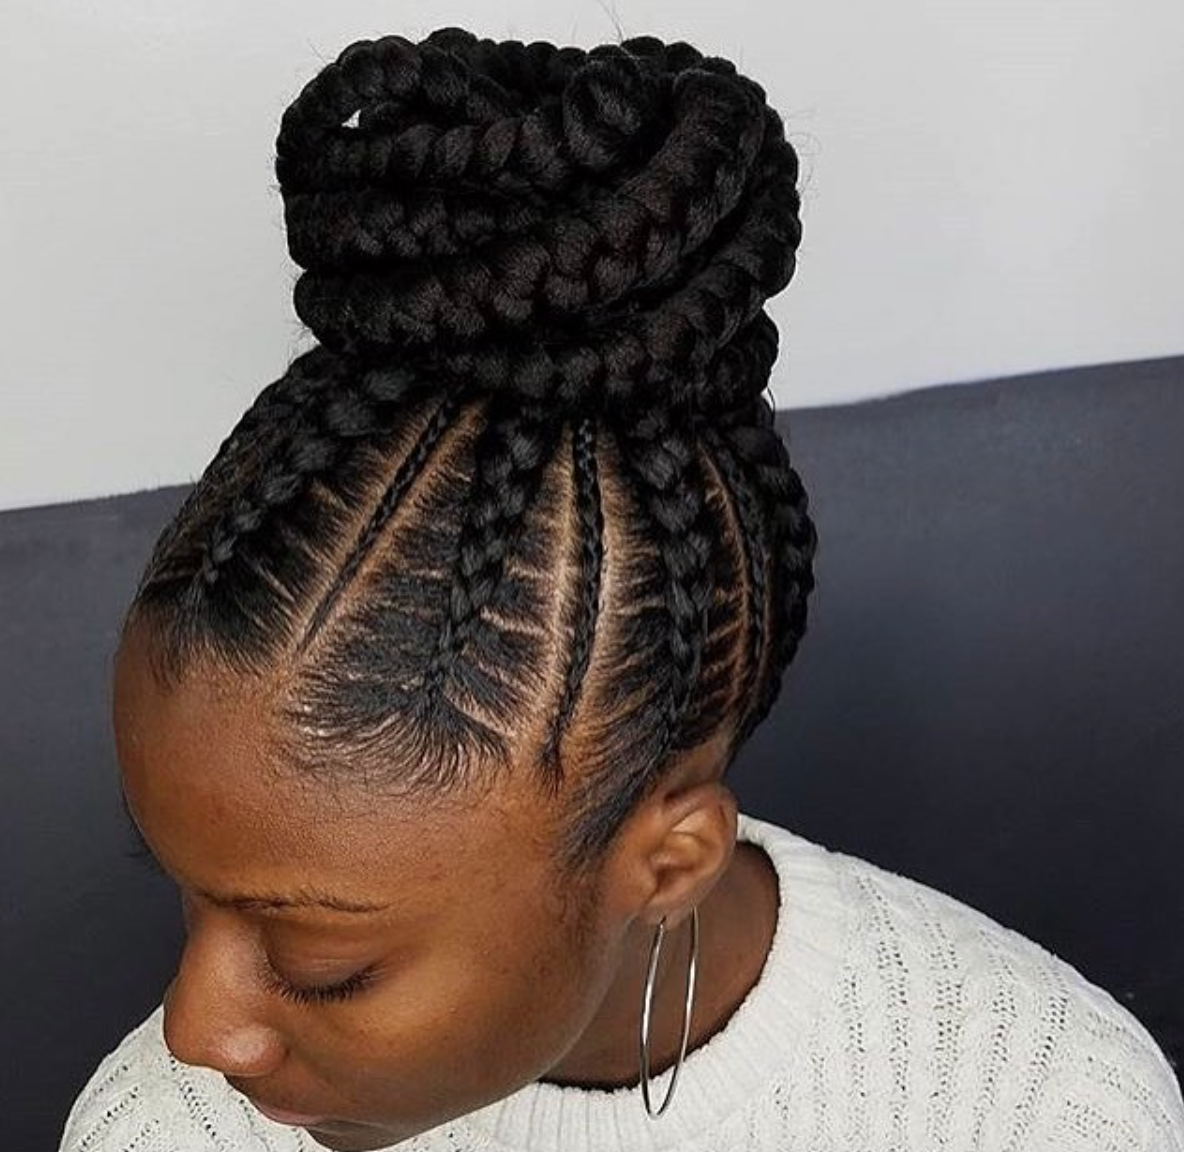 pin by tj west on fun protective style ideas in 2019